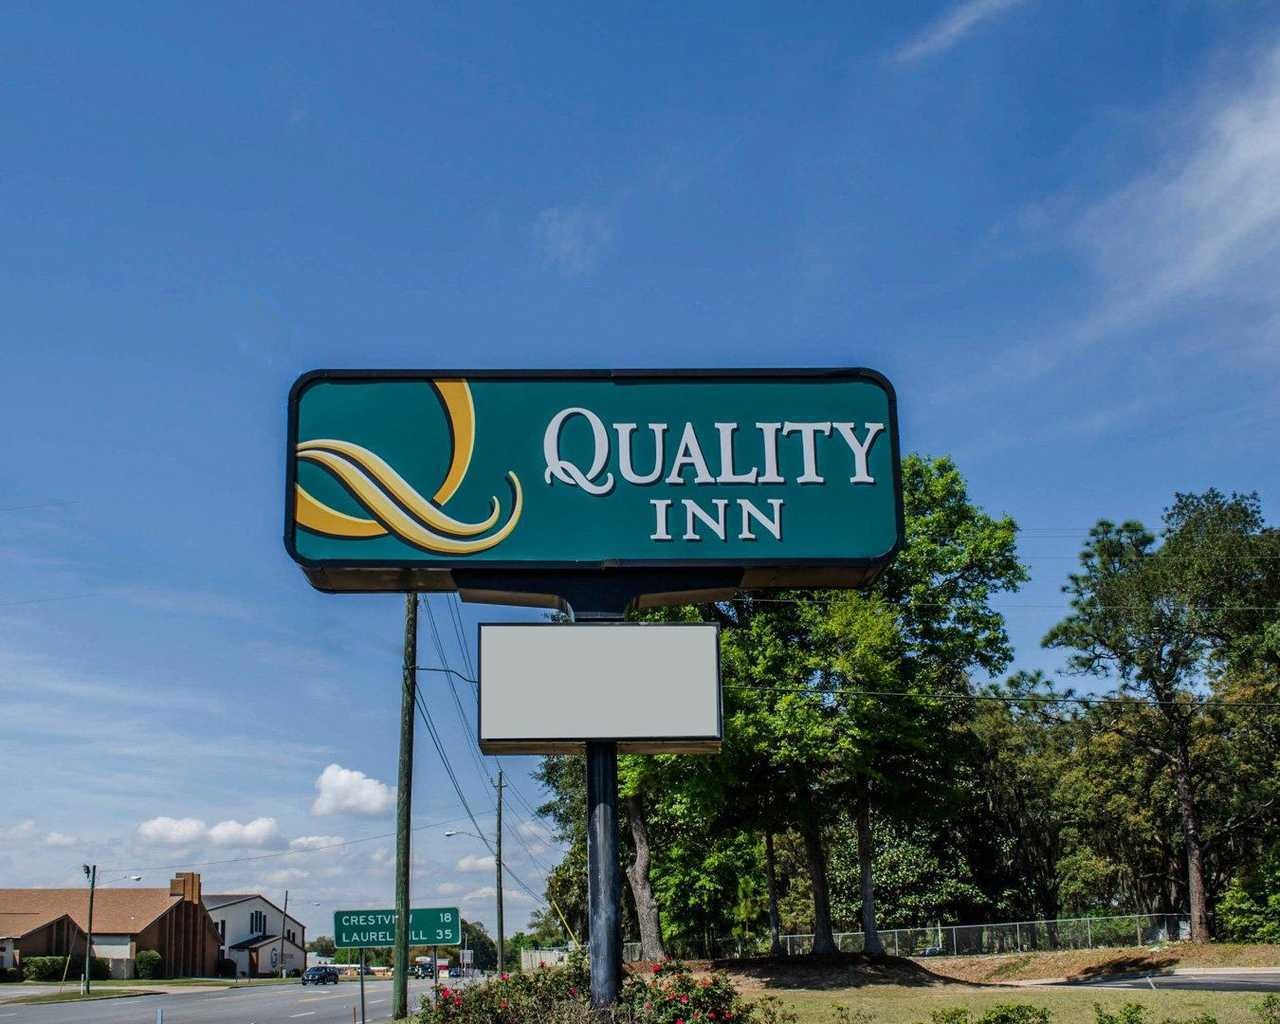 free online personals in eglin afb Book your eglin air force base car rental now  quality inn at eglin afb  because with access to a car rental in eglin air force base, you're free to.